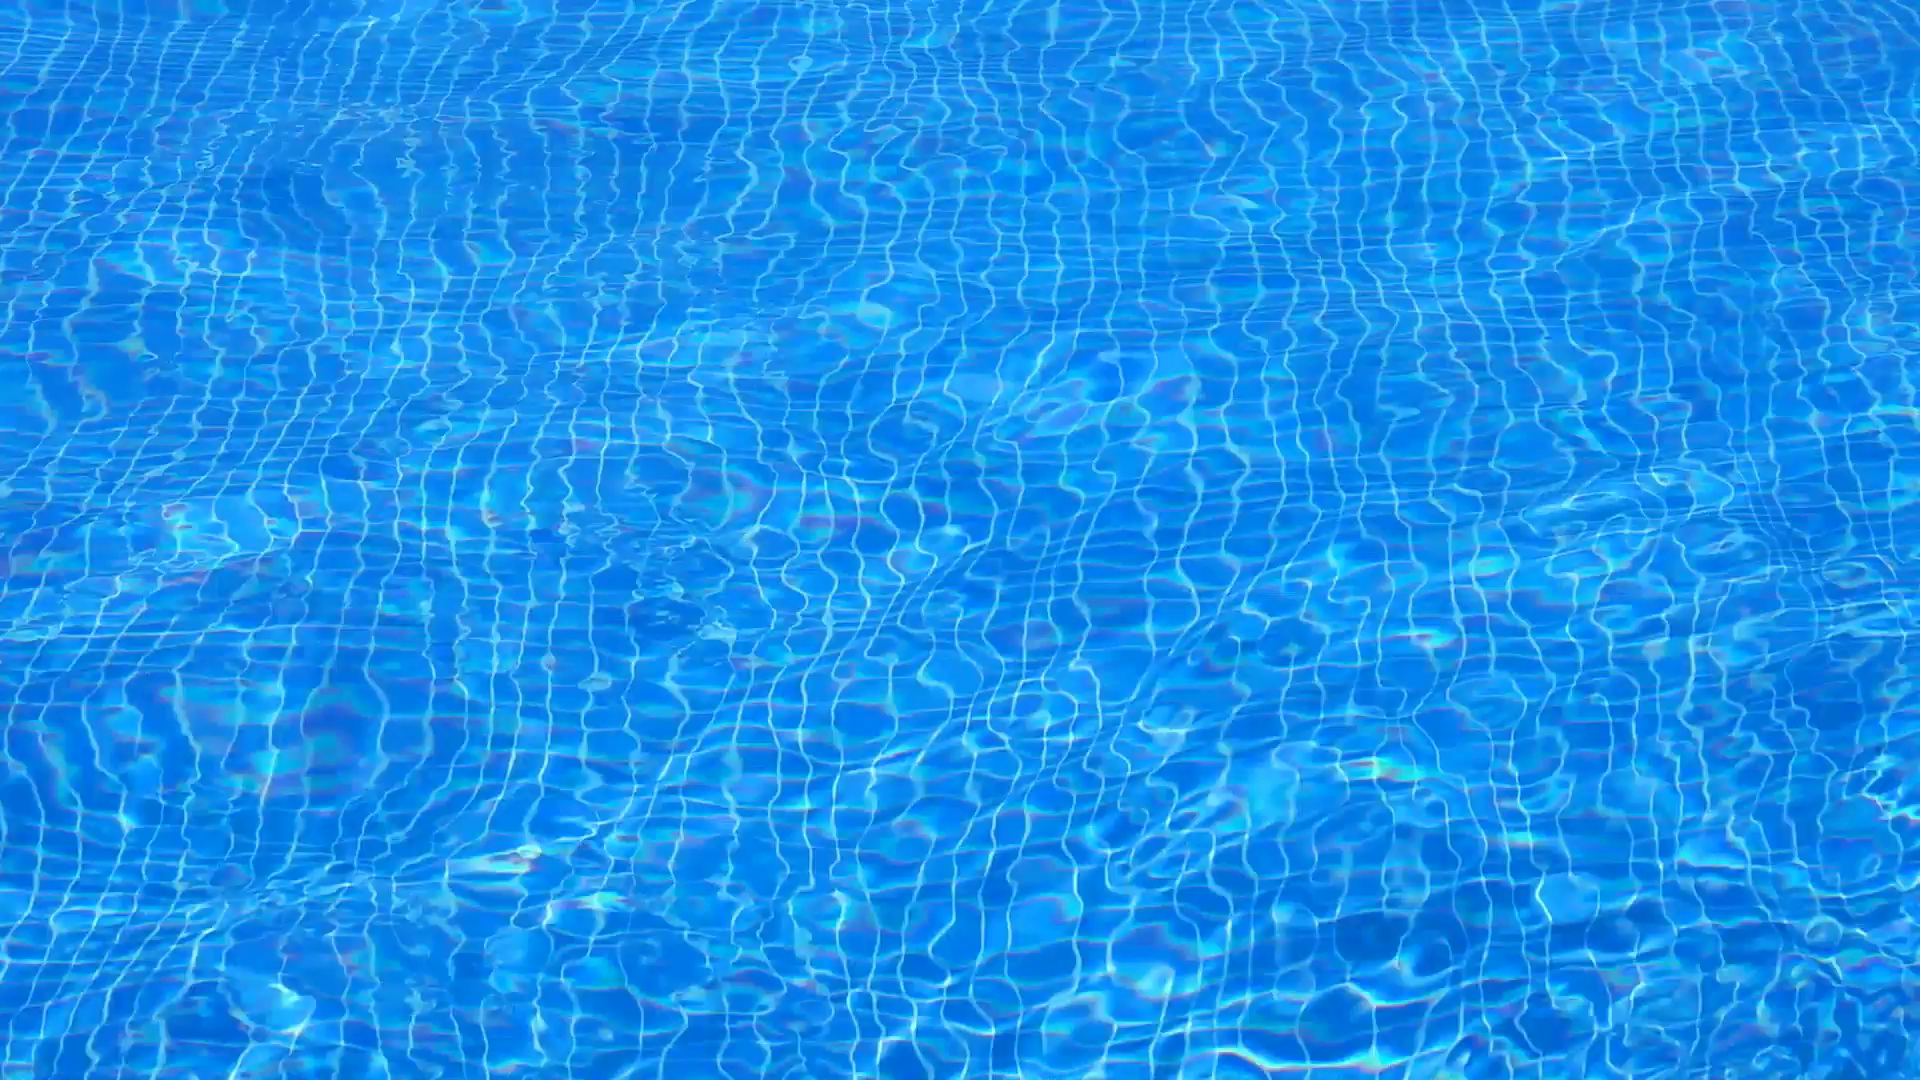 Pool Water Reflections Motion Background Videoblocks Water Reflections Pool Water Motion Backgrounds